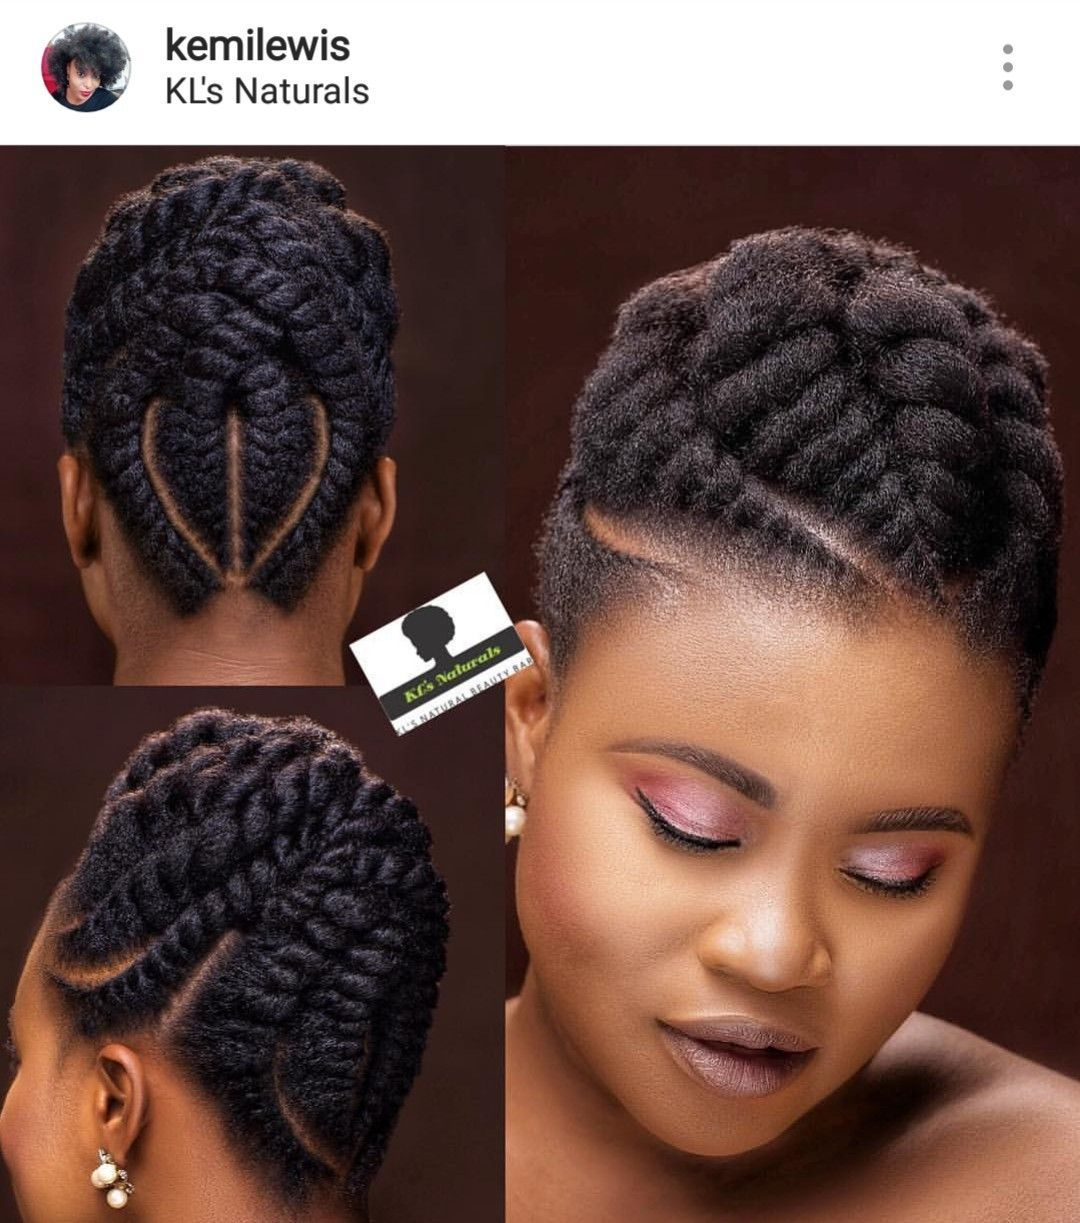 By Using Swap Photos Of Black Braids You Can Acquire An Idea Of What The Effect Might Or Mig Natural Hair Twists Natural Hair Styles African Braids Hairstyles